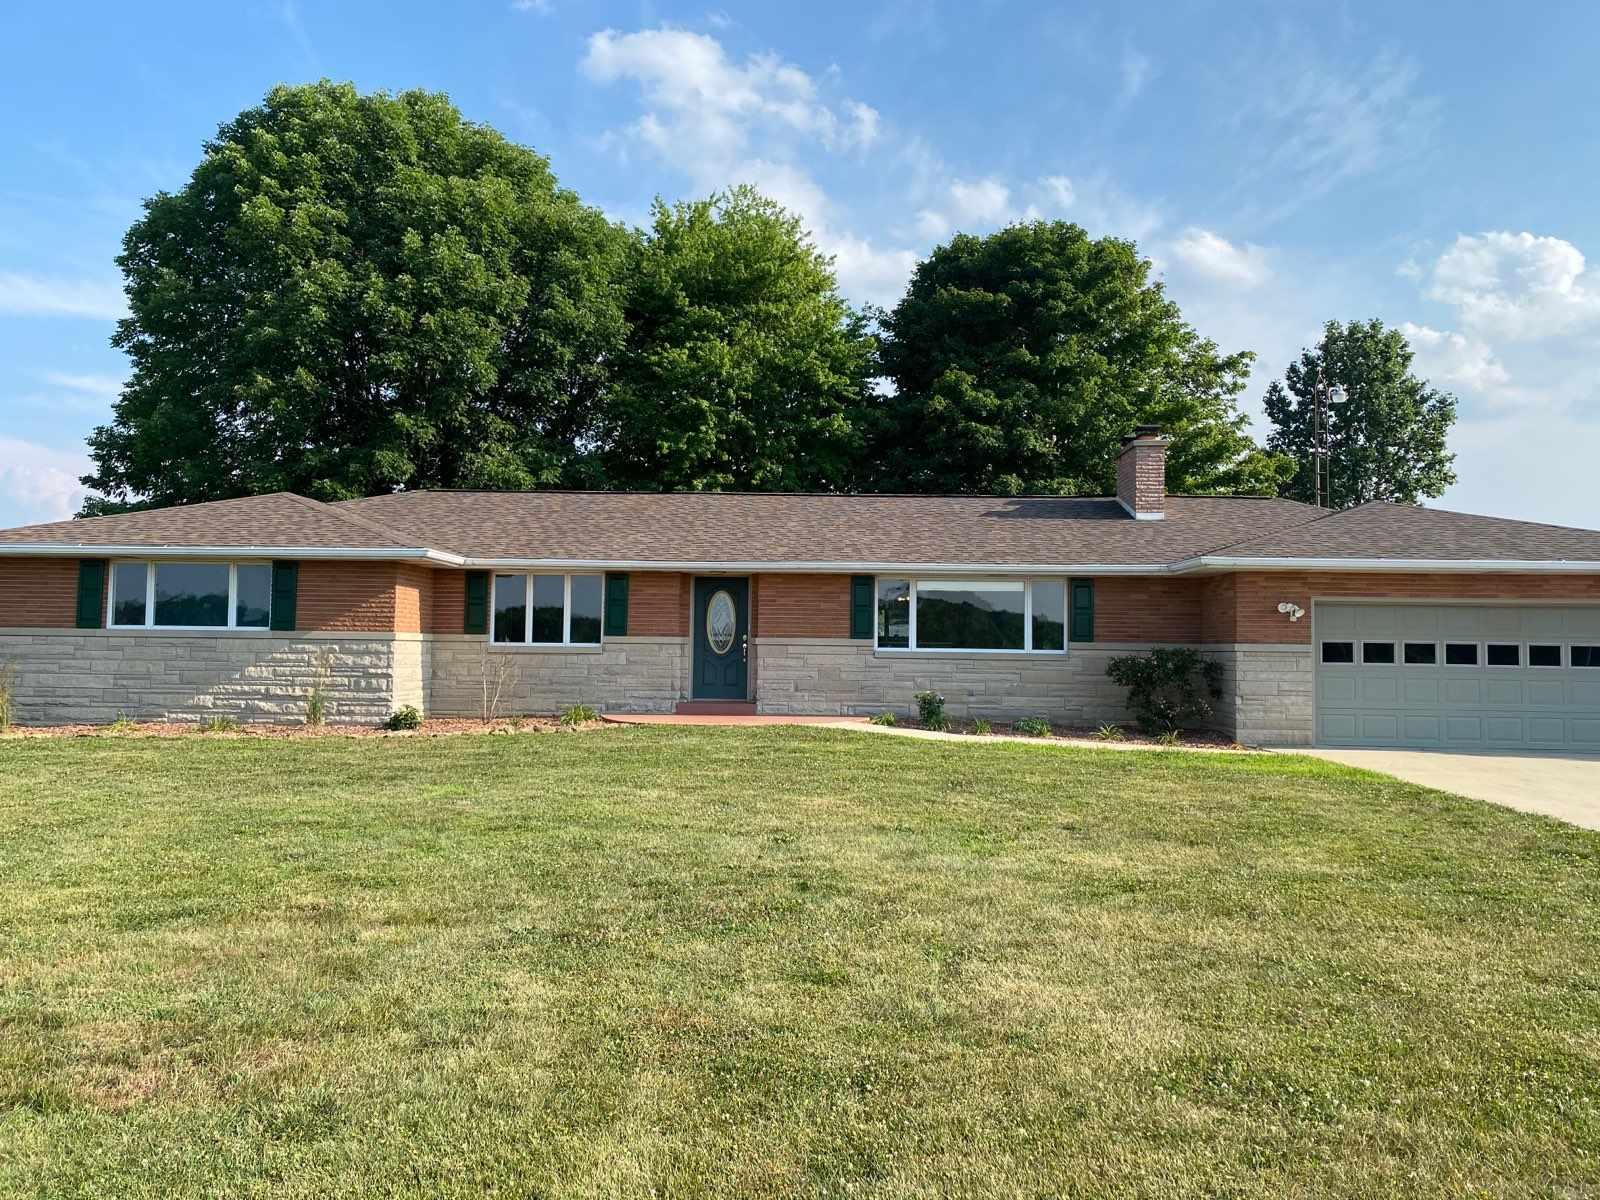 Amazing 4 Bedroom 3 bathroom home!  This property sits on 2.35 Acre and has a Magnificent Pond for Fishing and Swimming.  The House just had a brand new roof put on.  Has a open concept feel from the Kitchen, Dining, and Living Room.  The views are amazing and the property is minutes away from Patoka Lake!  If you are looking for a beautiful home with a quiet and private location, this is the house for you!  This property isn't going to last long.